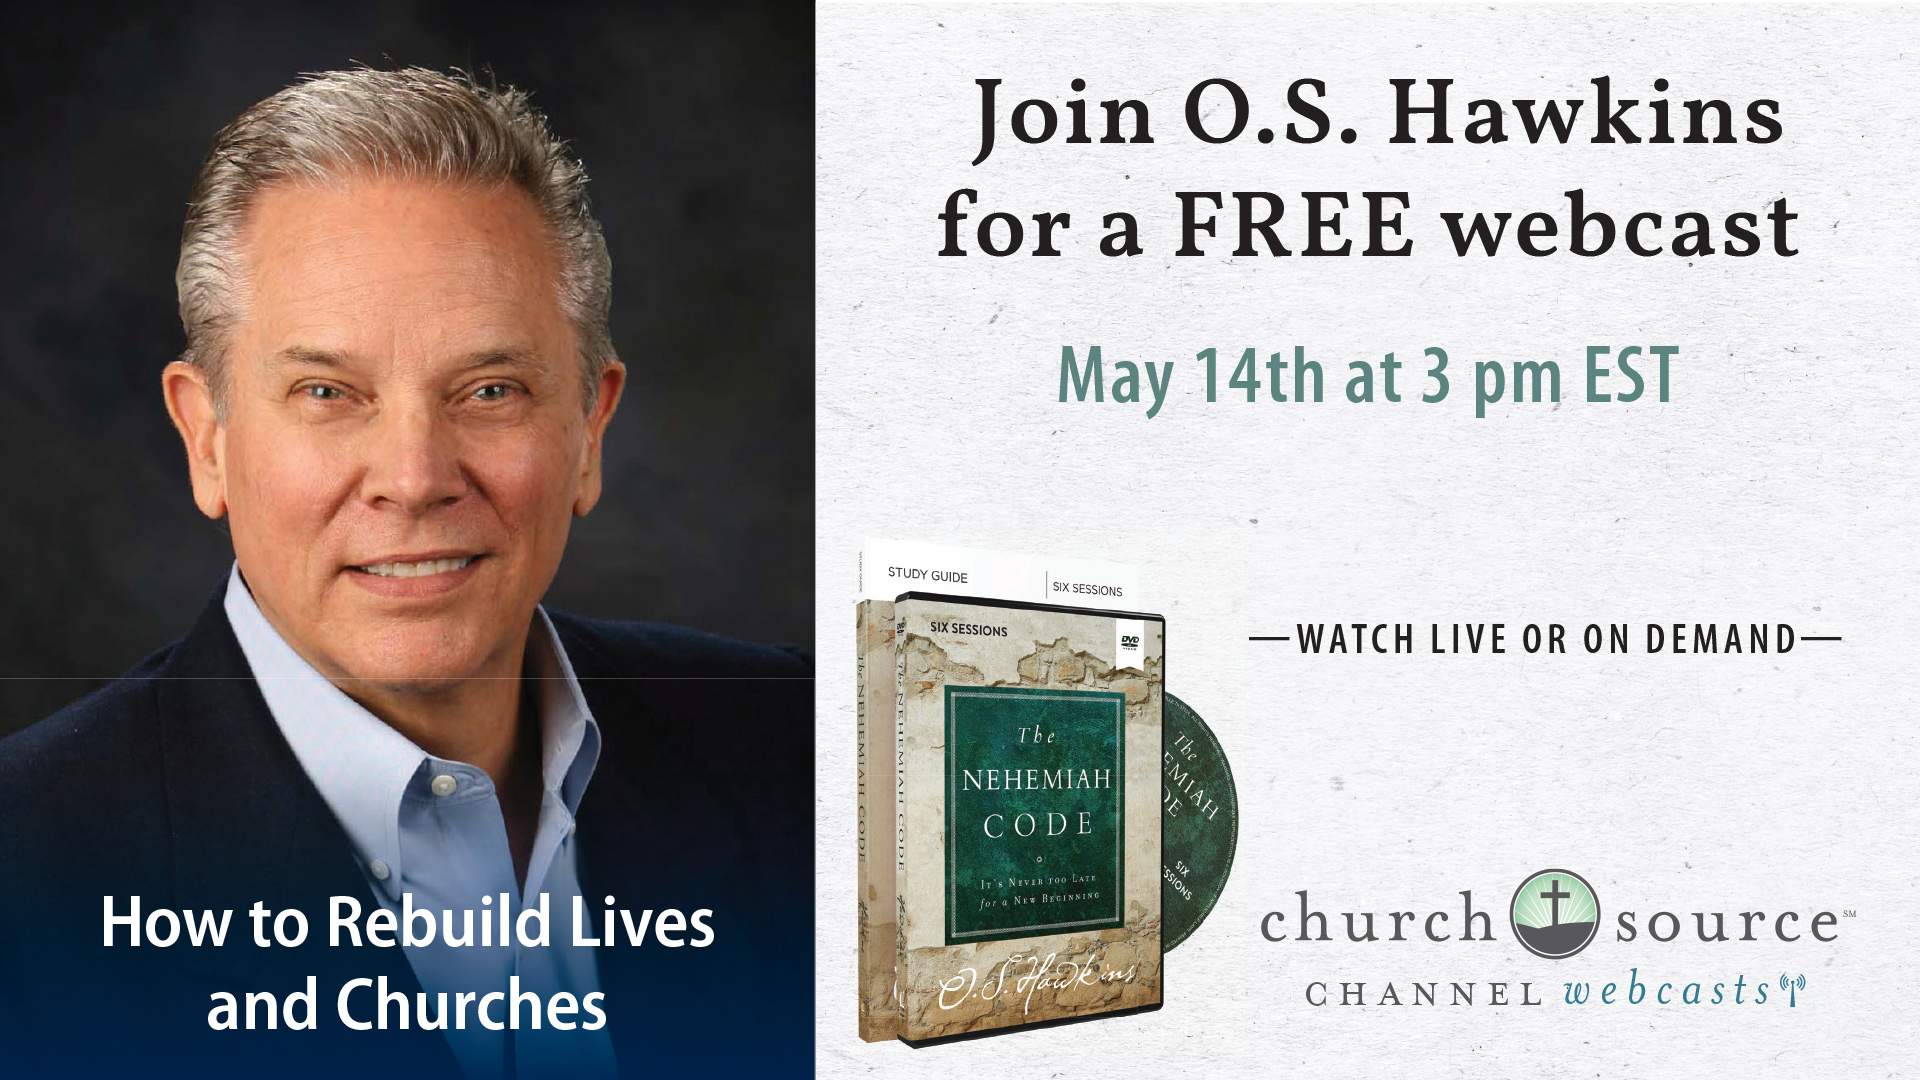 How to Rebuild Lives and Churches - Webcast with O.S. Hawkins